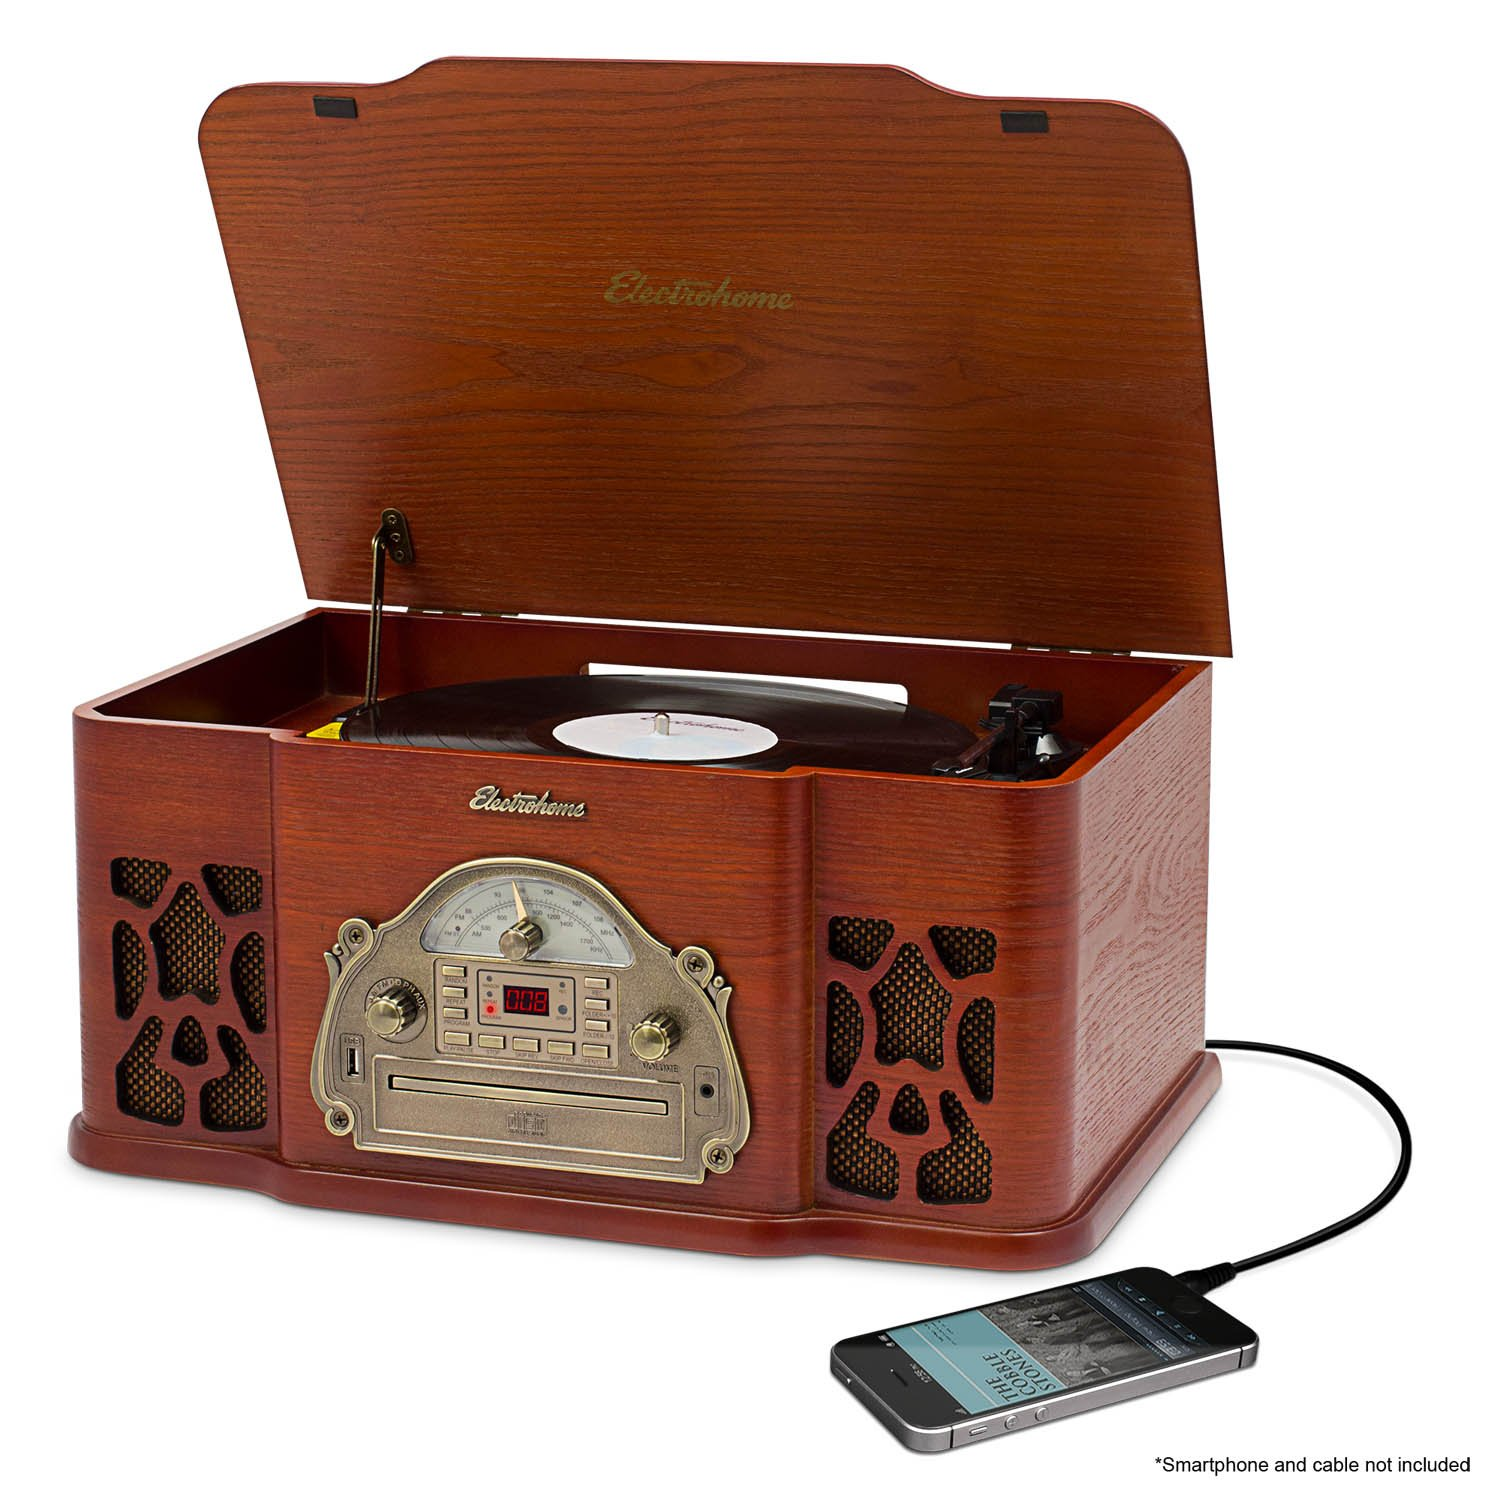 Electrohome Wellington Record Player Retro Vinyl Turntable - EANOS502